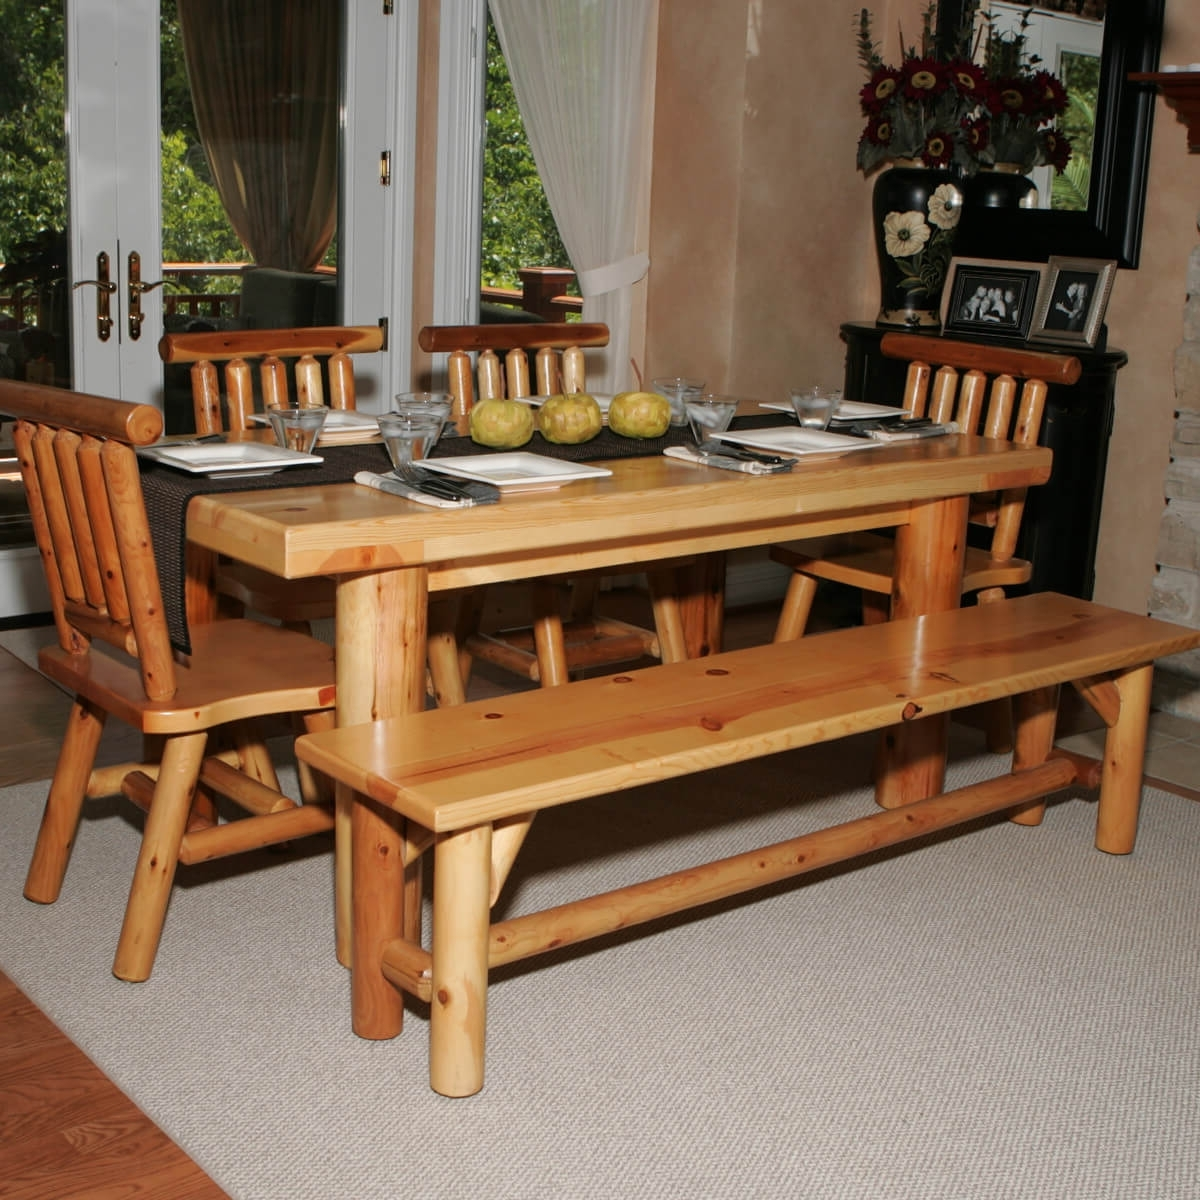 Dining Tables Seats 8 Intended For Most Up To Date 26 Dining Room Sets (Big And Small) With Bench Seating (2018) (View 12 of 25)